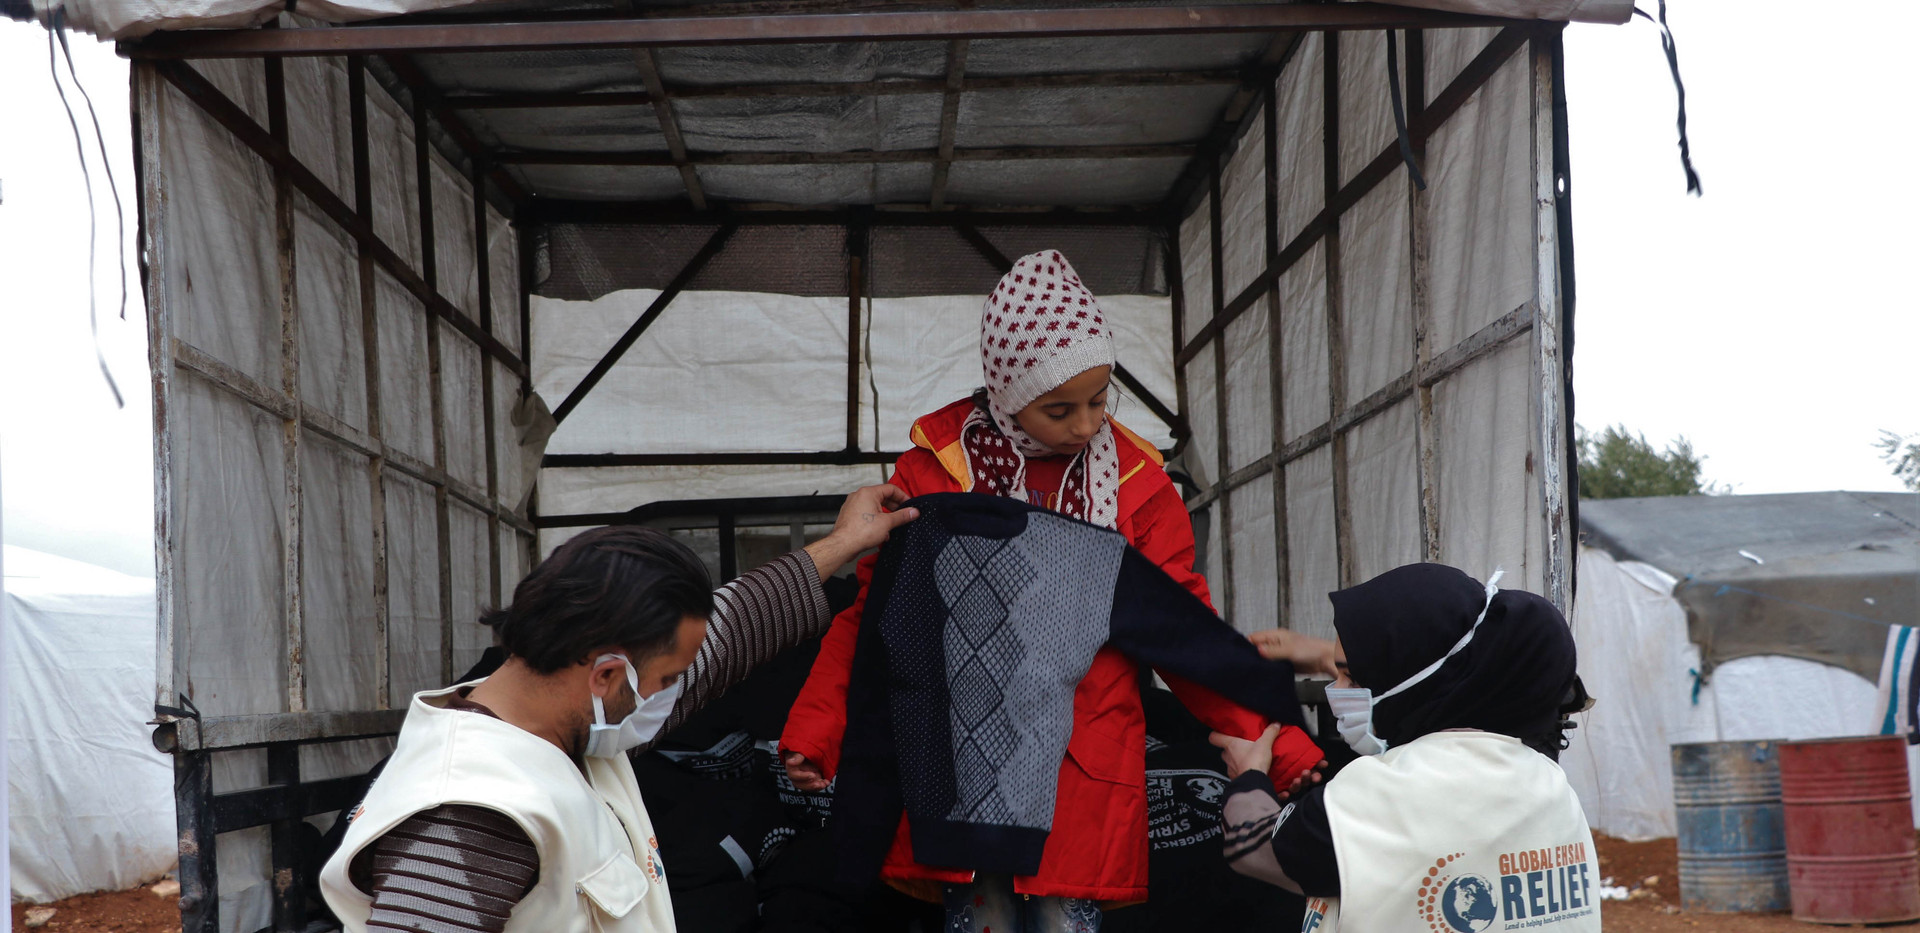 Winter Clothes Distribution in Syria 2020